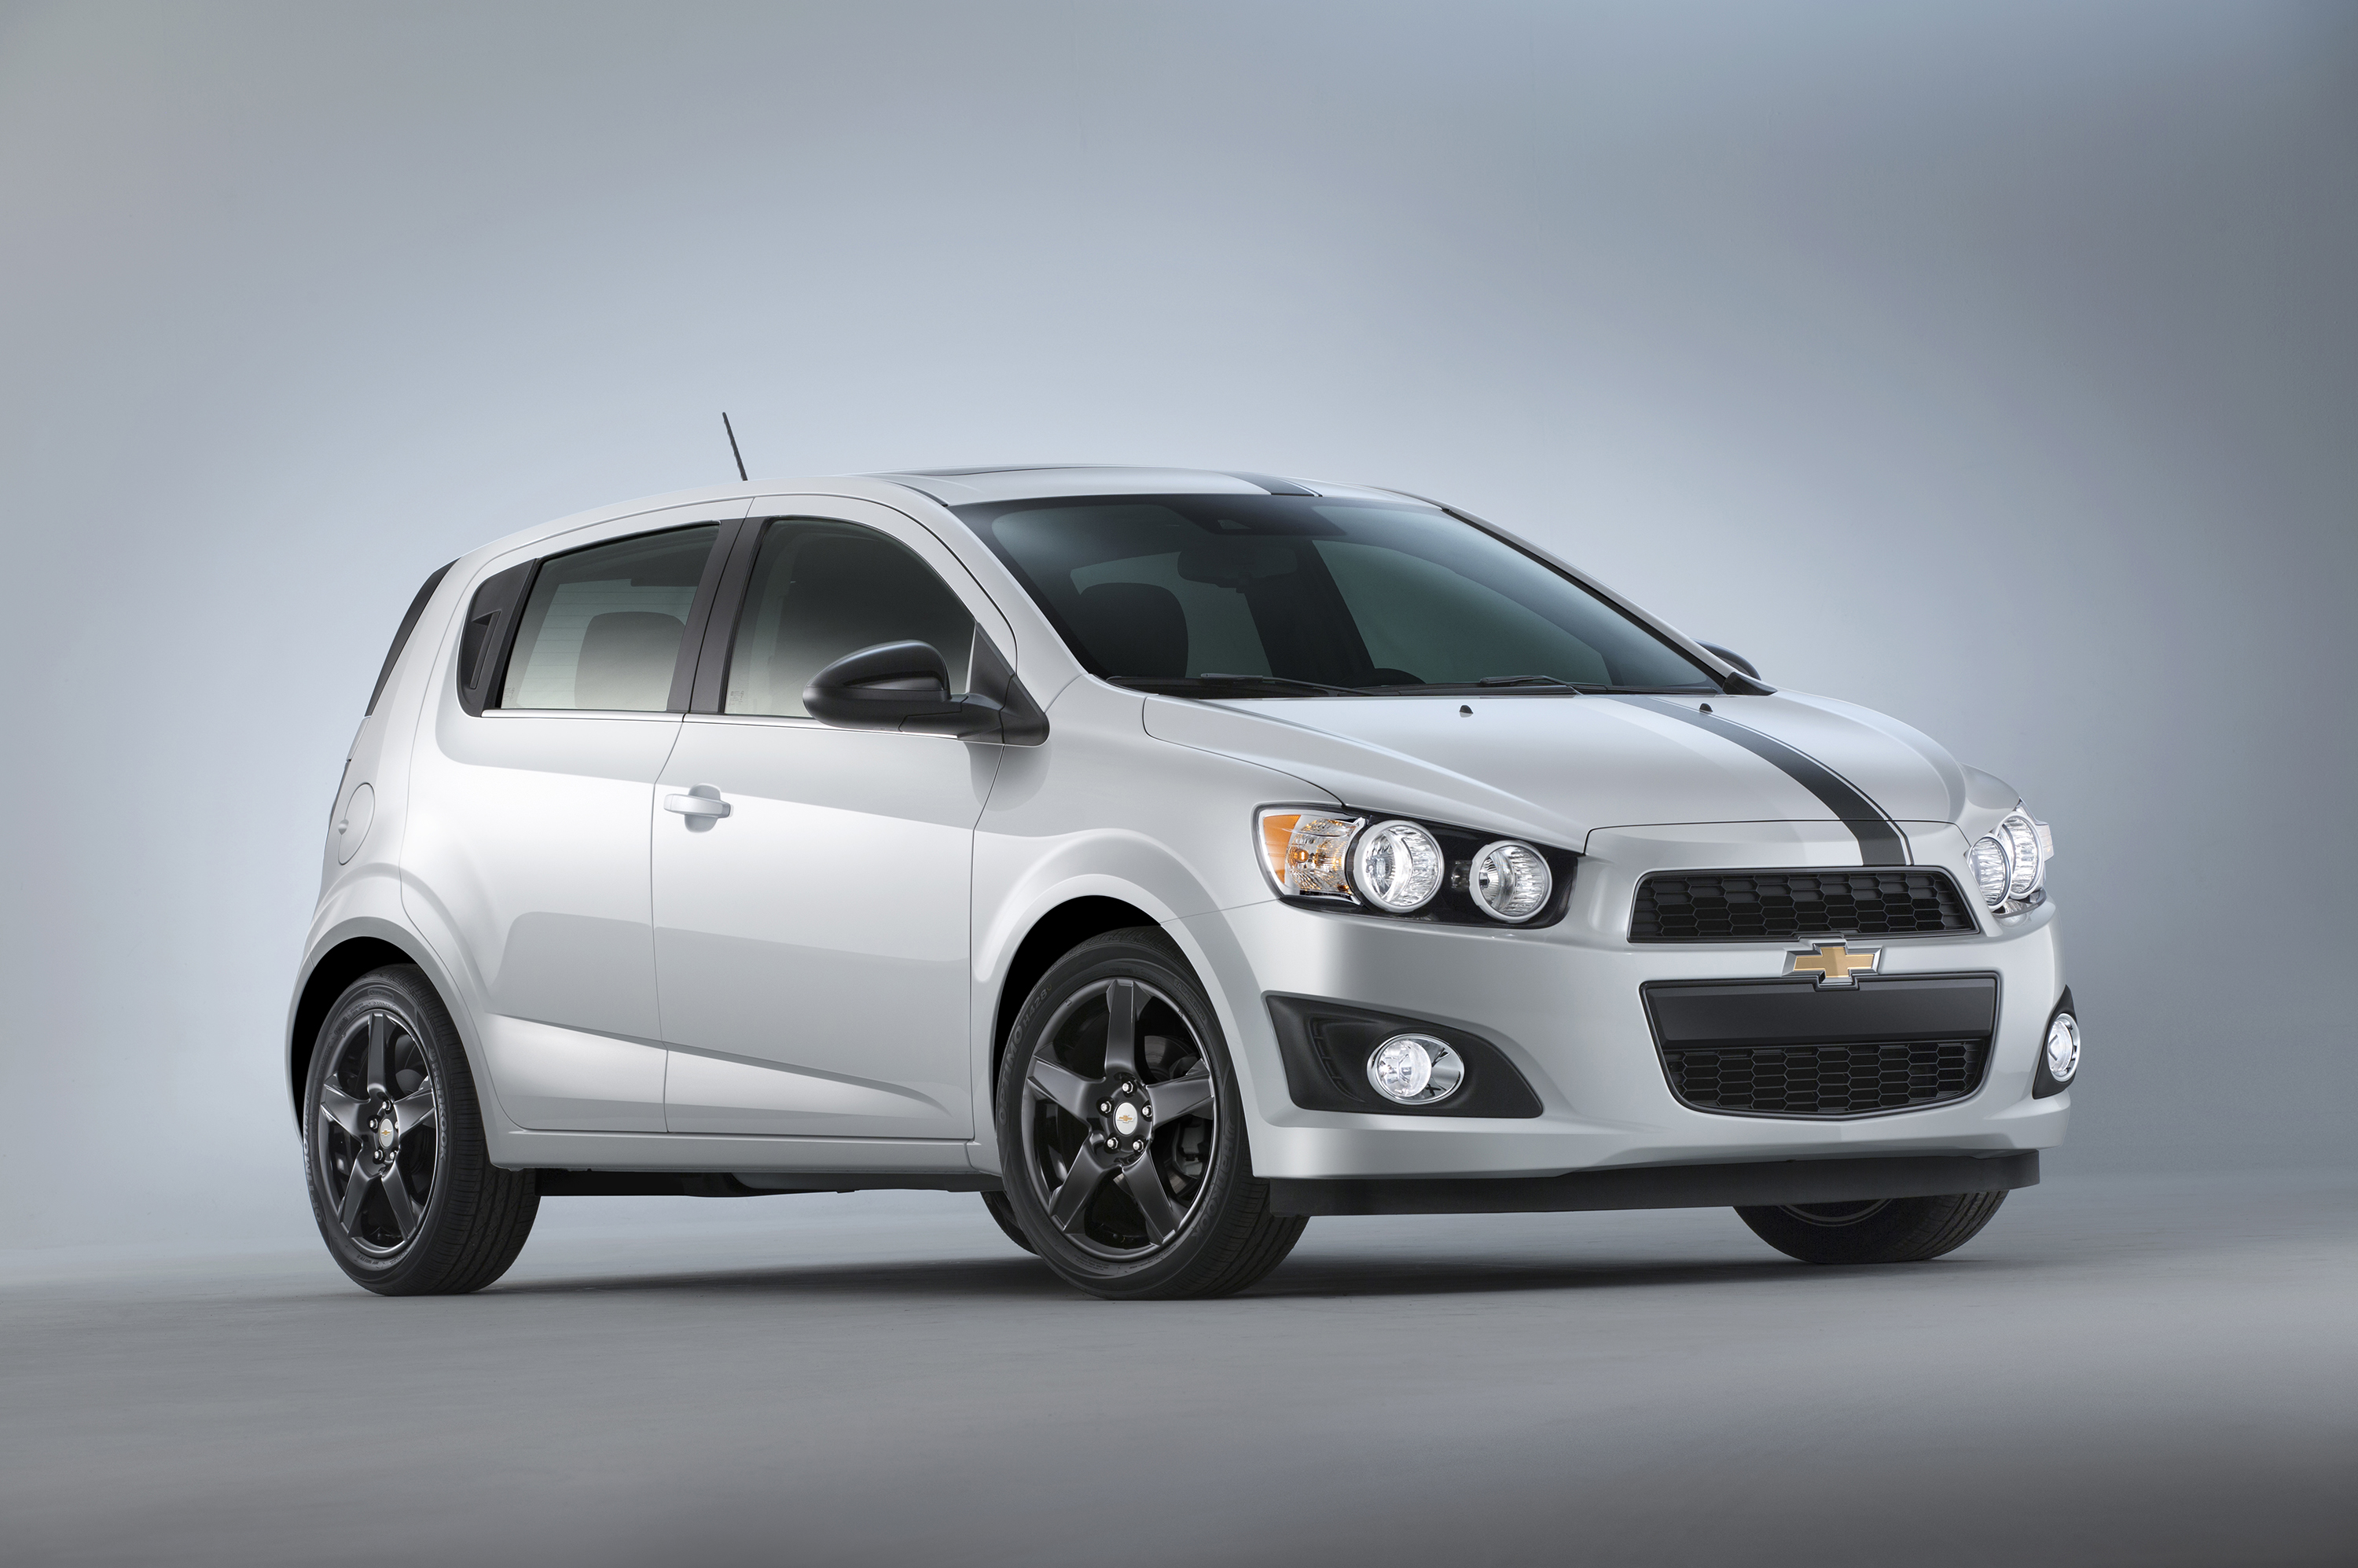 Wiring Diagram Chevy Sonic 2014 Detailed Schematics 2010 Buick Lacrosse Free Picture Lumina